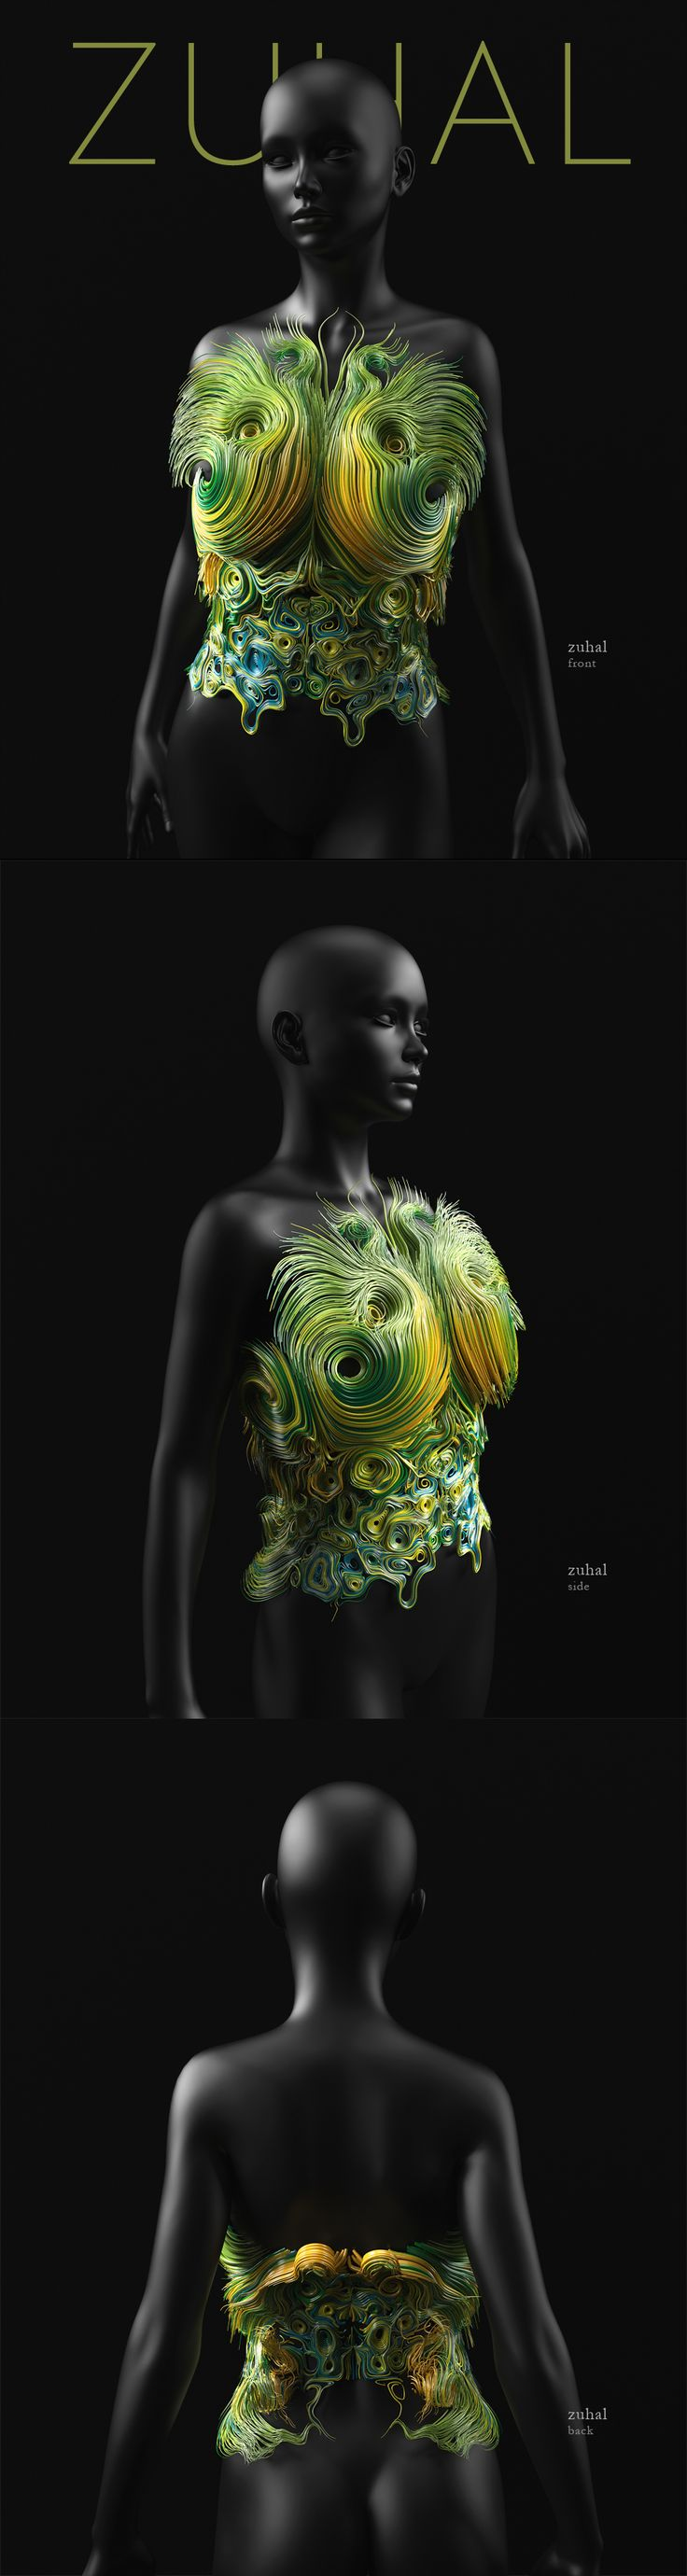 Neri Oxman - Wanderers on Behance